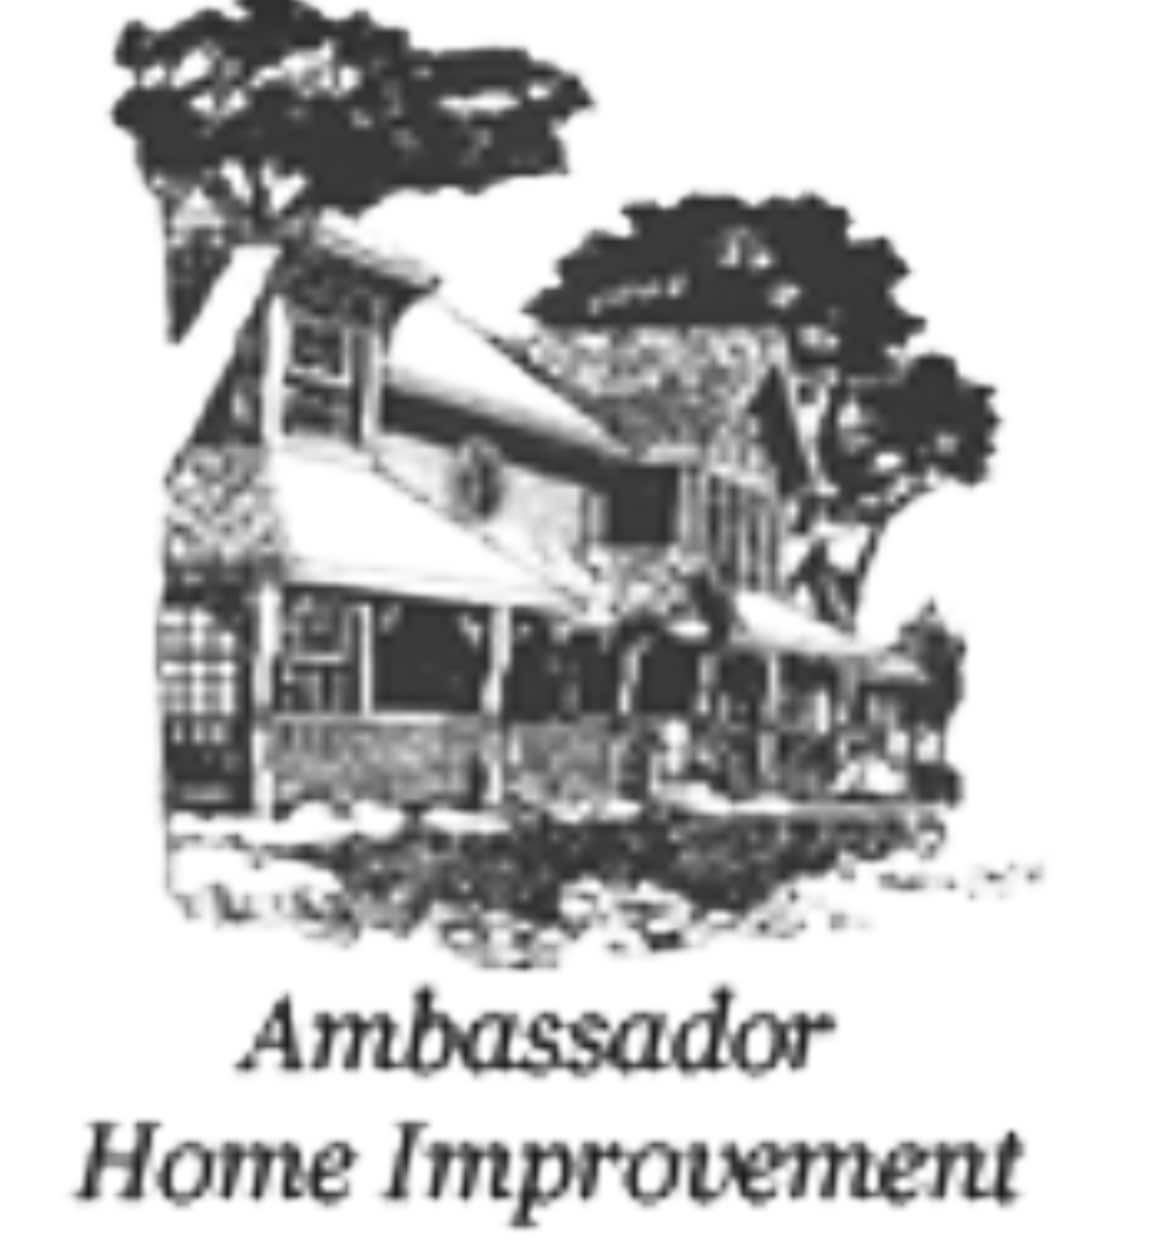 Ambassador Home Improvement